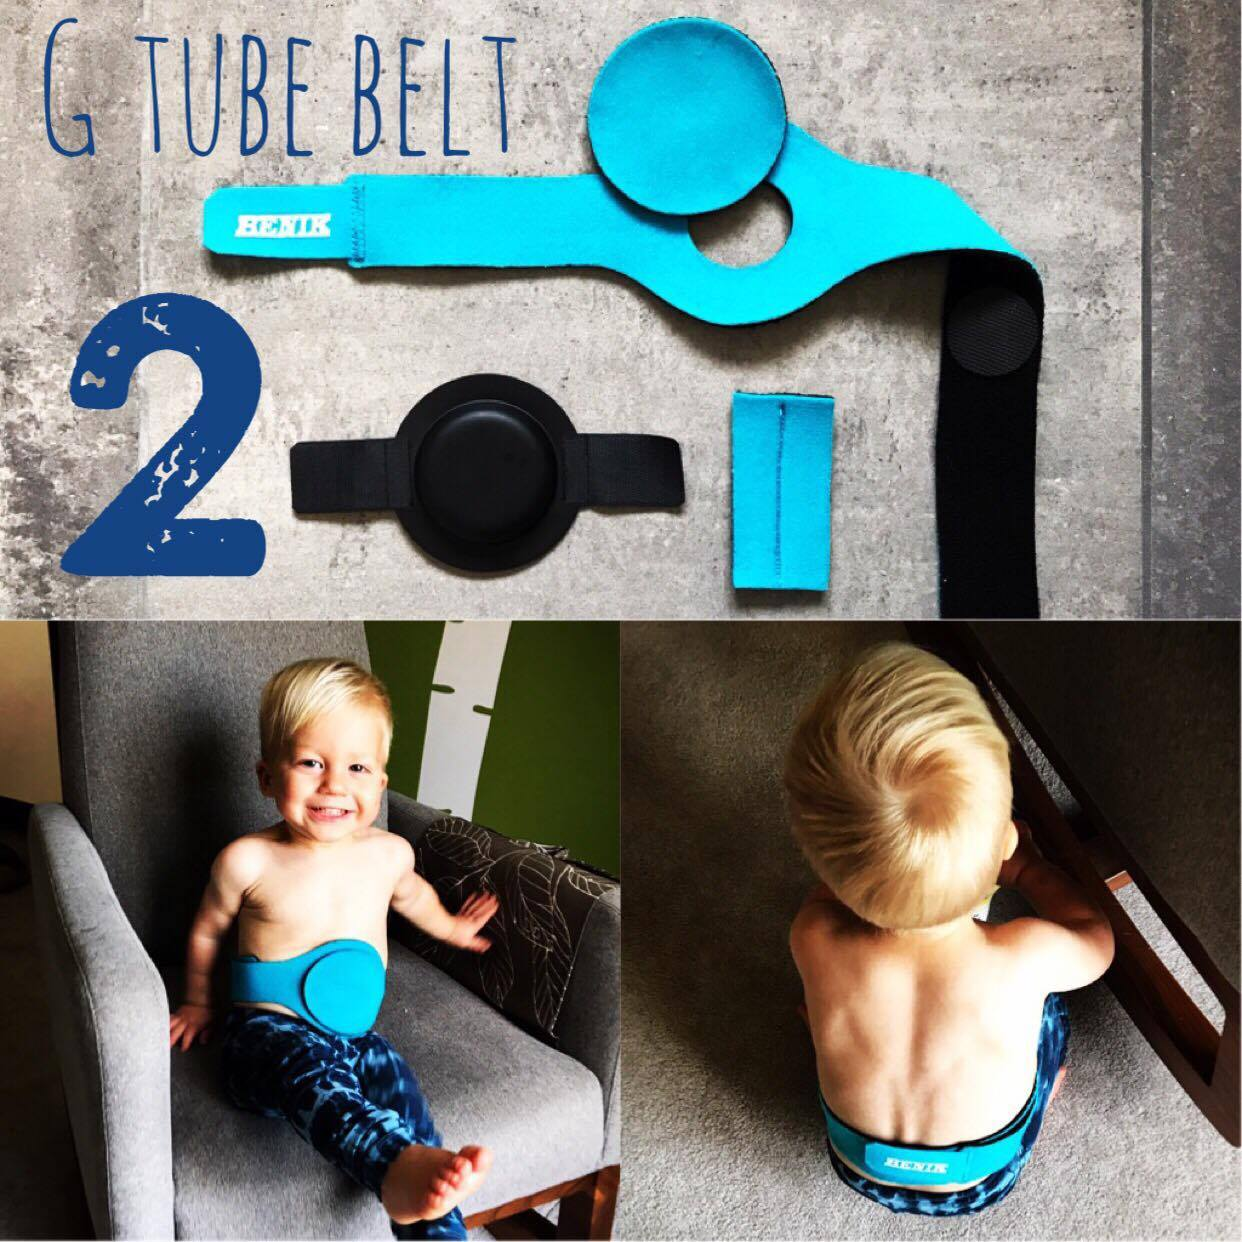 2. G Tube Belt  Once Arlo started doing tummy time I began worrying about his Mini One Button pulling from side to side, or even worse, it being pulled out.  I propped him up with extra pillows and blankets to cushion him. However, the first time he went down a slide on his tummy, I knew we had to find something to better protect the button from tugging or being pulled out. We don't use this  Benik Belt  daily. We use it for active times when we take a trip to the park, go to gymnastics class, or a play place. However, now that he wrestles with his big brother and slides down the stairs on his tummy, we may be using it a lot more in these toddler stages! They are pretty pricey, so we were able to have our pediatrician call it in as a prescription/recommendation and it drastically reduced the price.